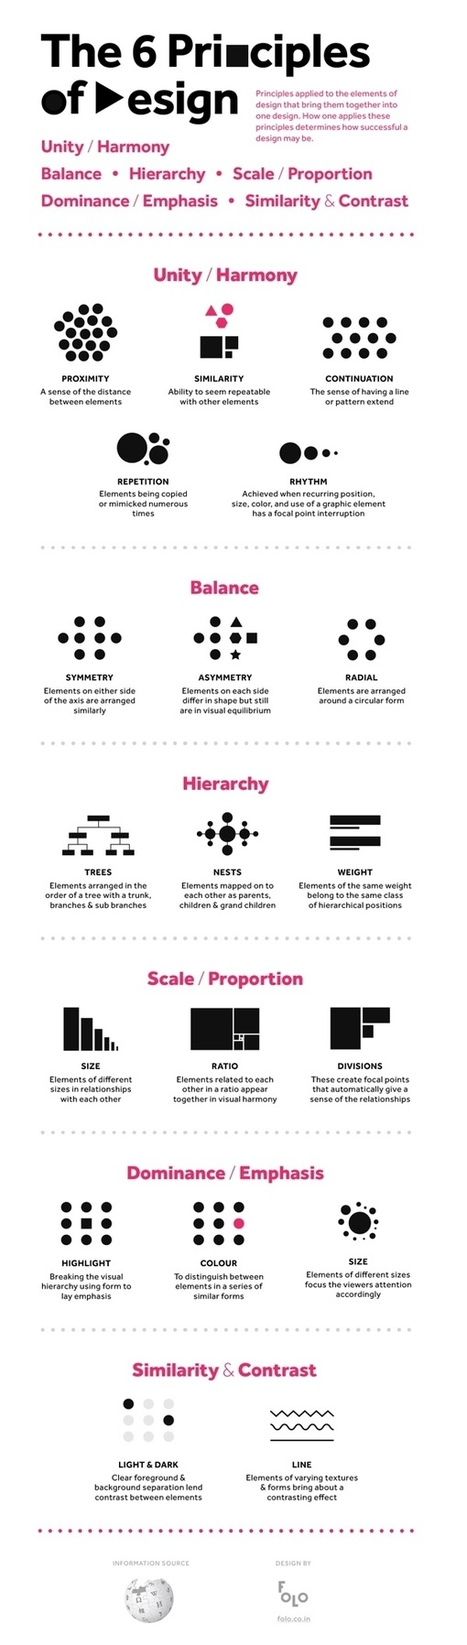 The 6 Principles of Design - Blog About Infographics and Data Visualization - Cool Infographics | Infographics | Scoop.it